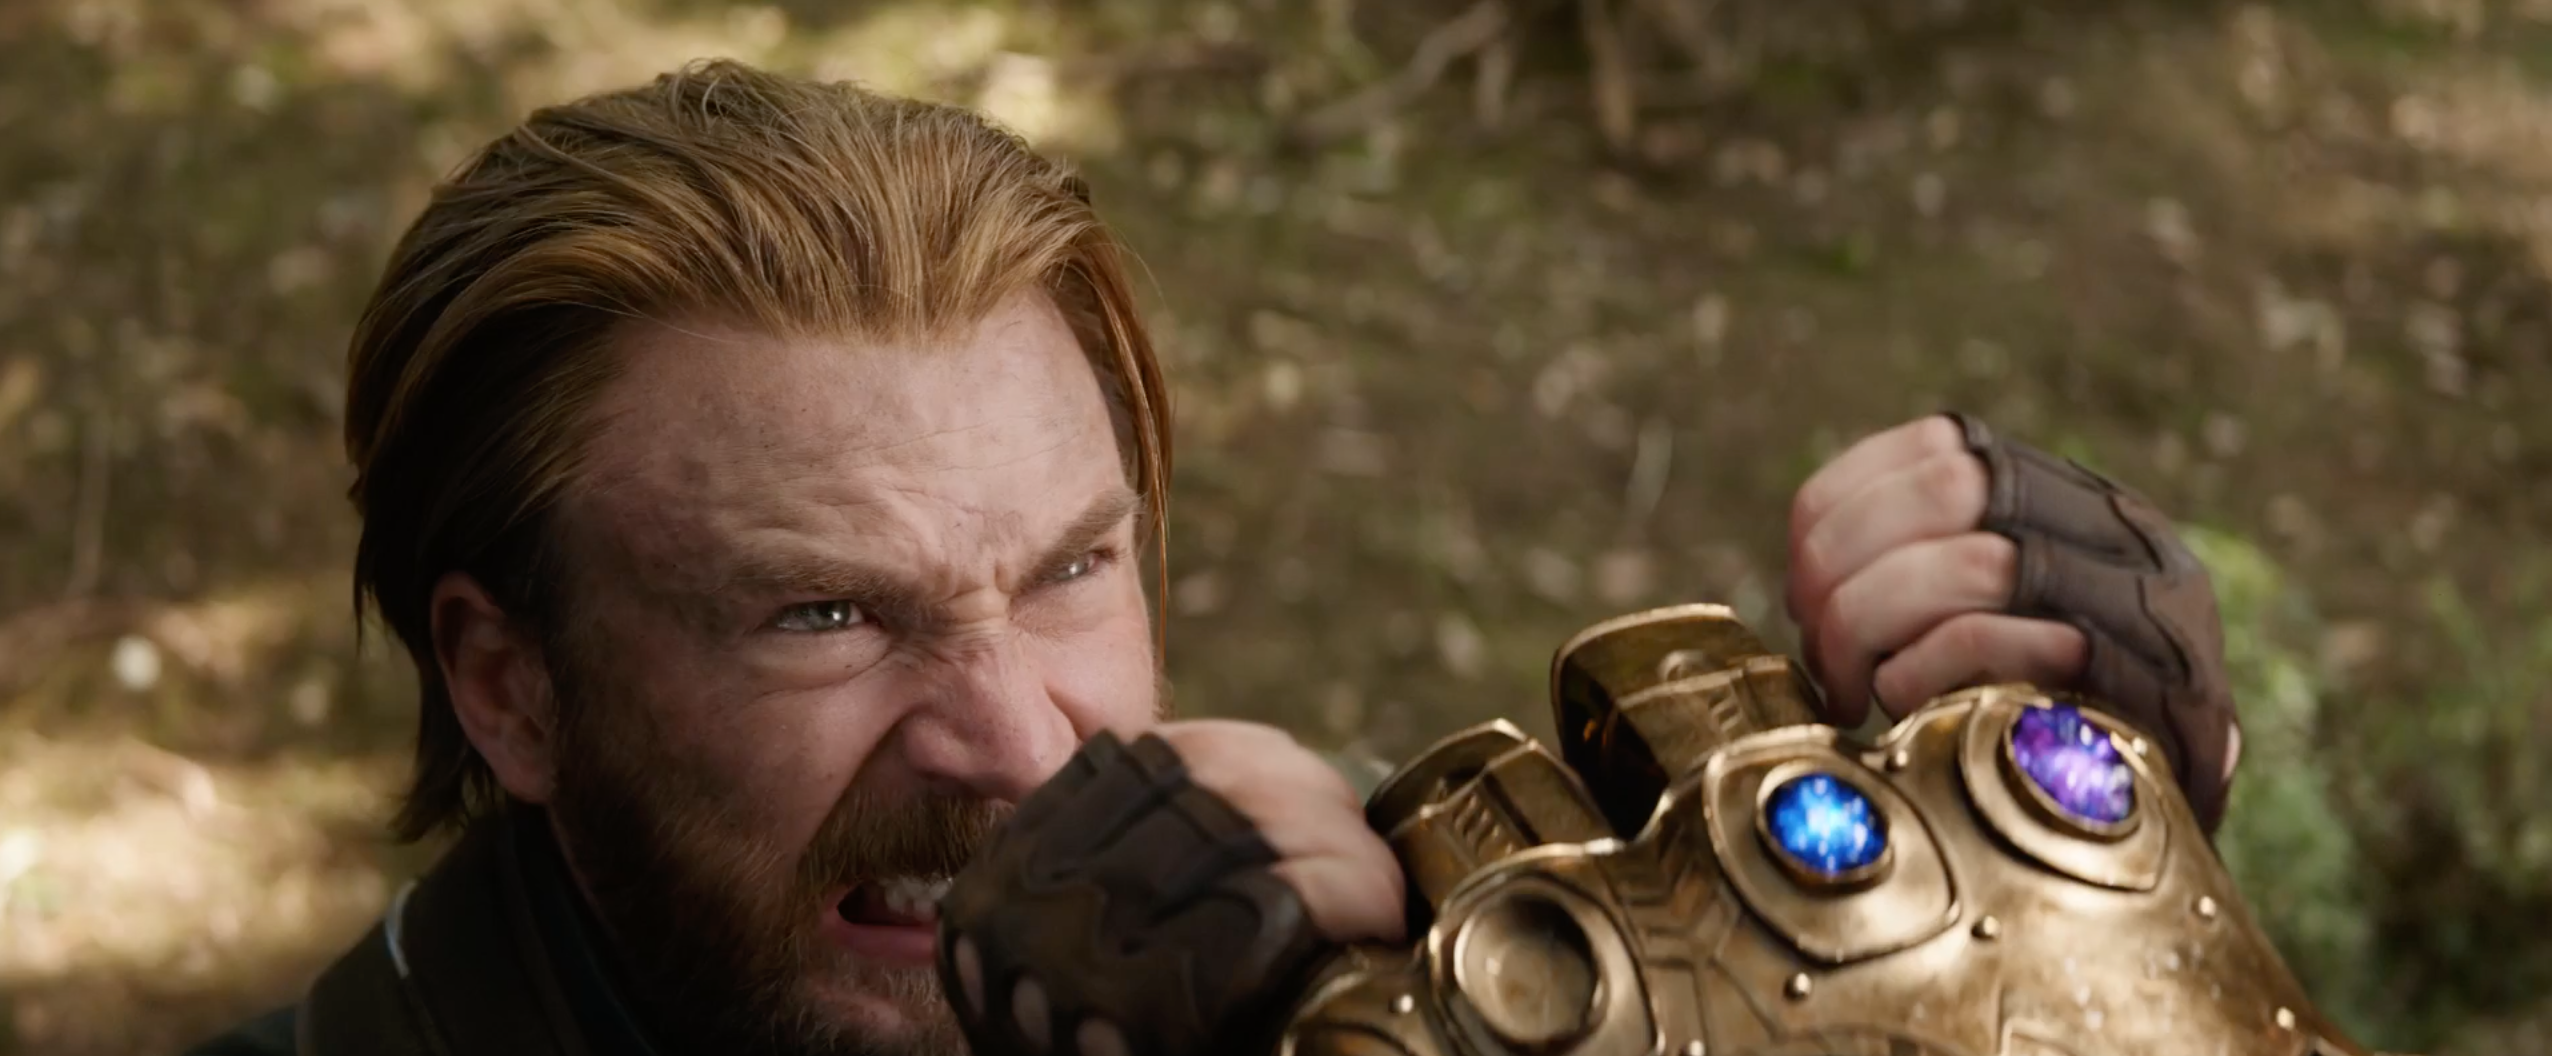 'Avengers: Endgame' Theory Claims Collecting Infinity Stones Is Unnecessary